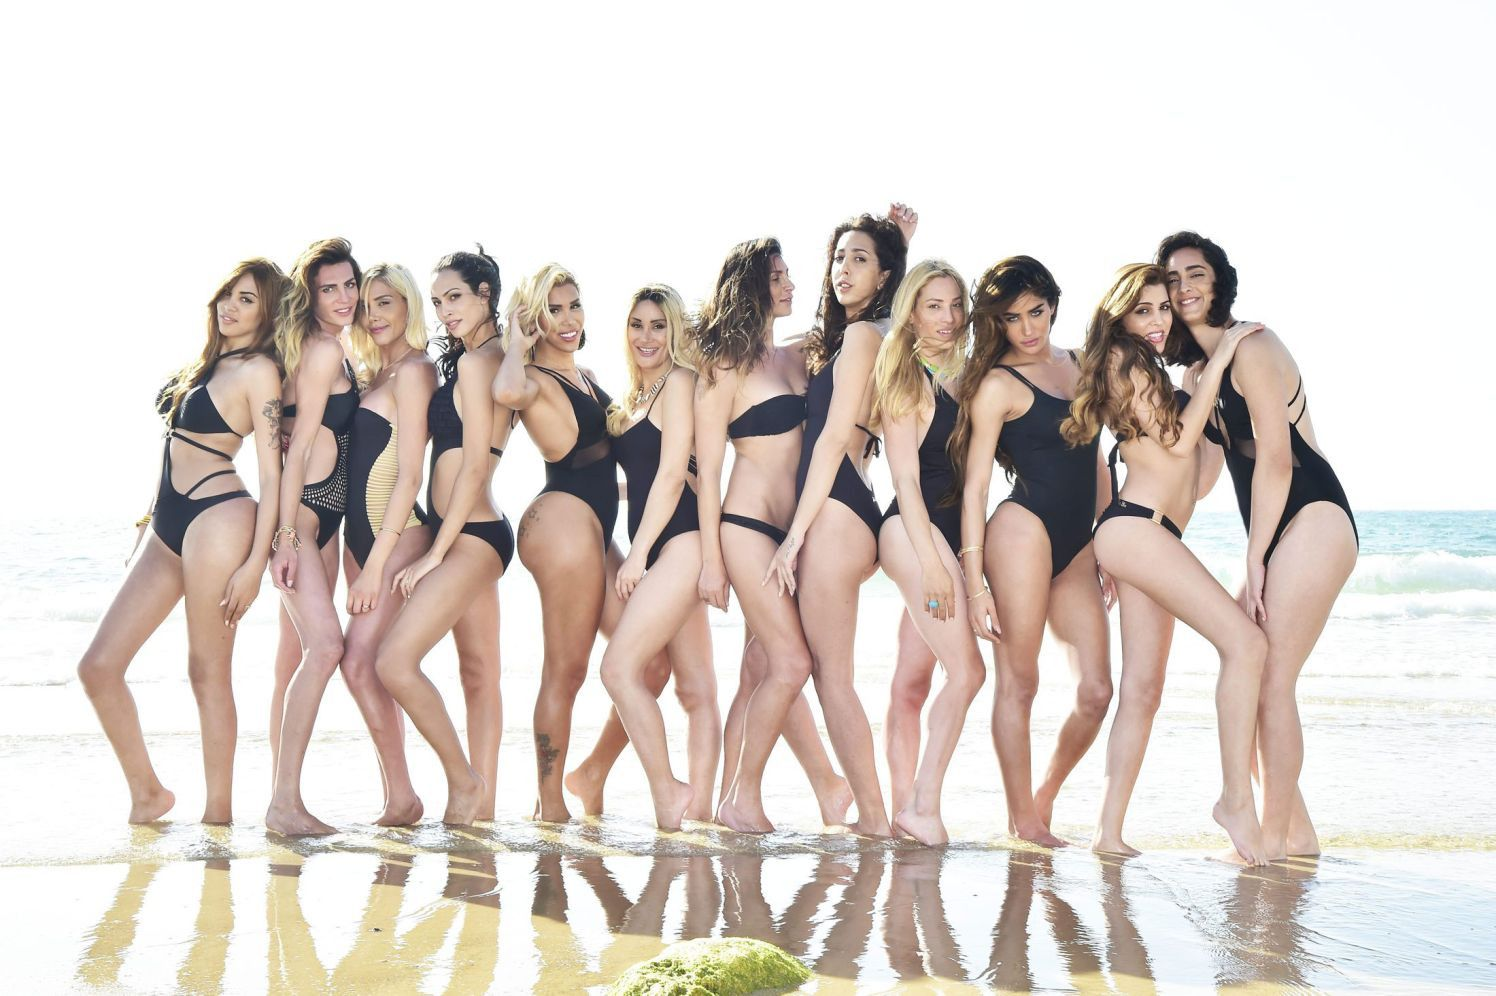 Contestants in the first Israeli pageant for transgender women, to be held on May 27.